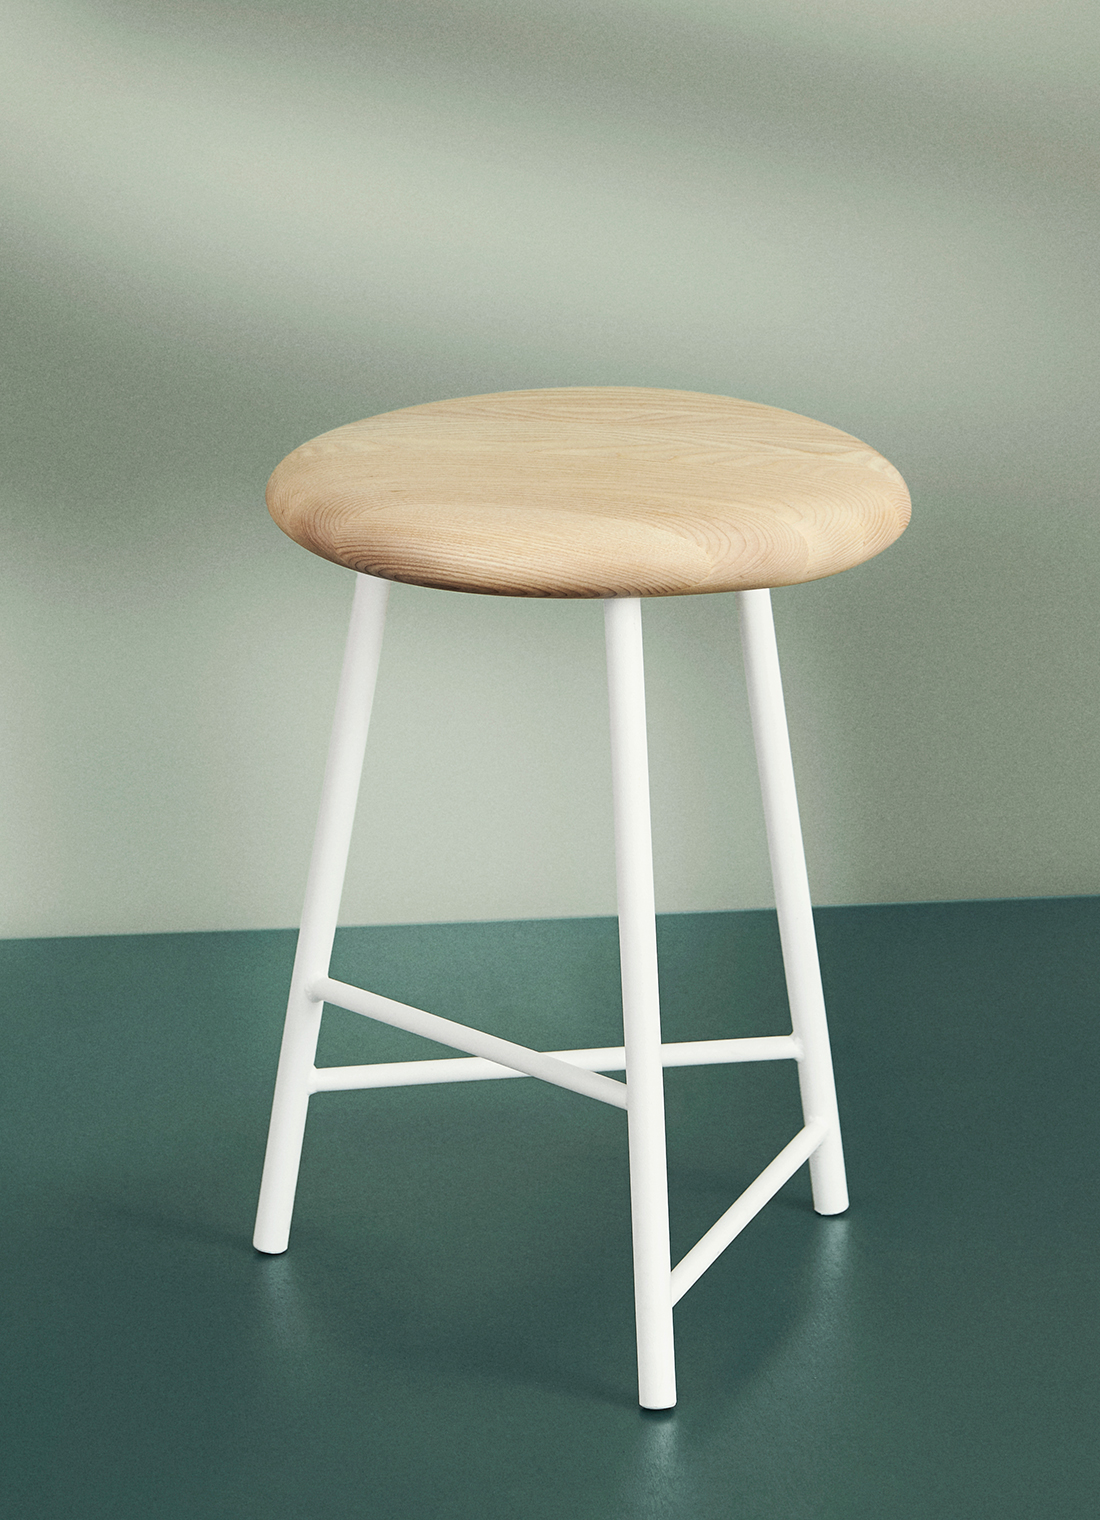 Pebble stool in ash and white.